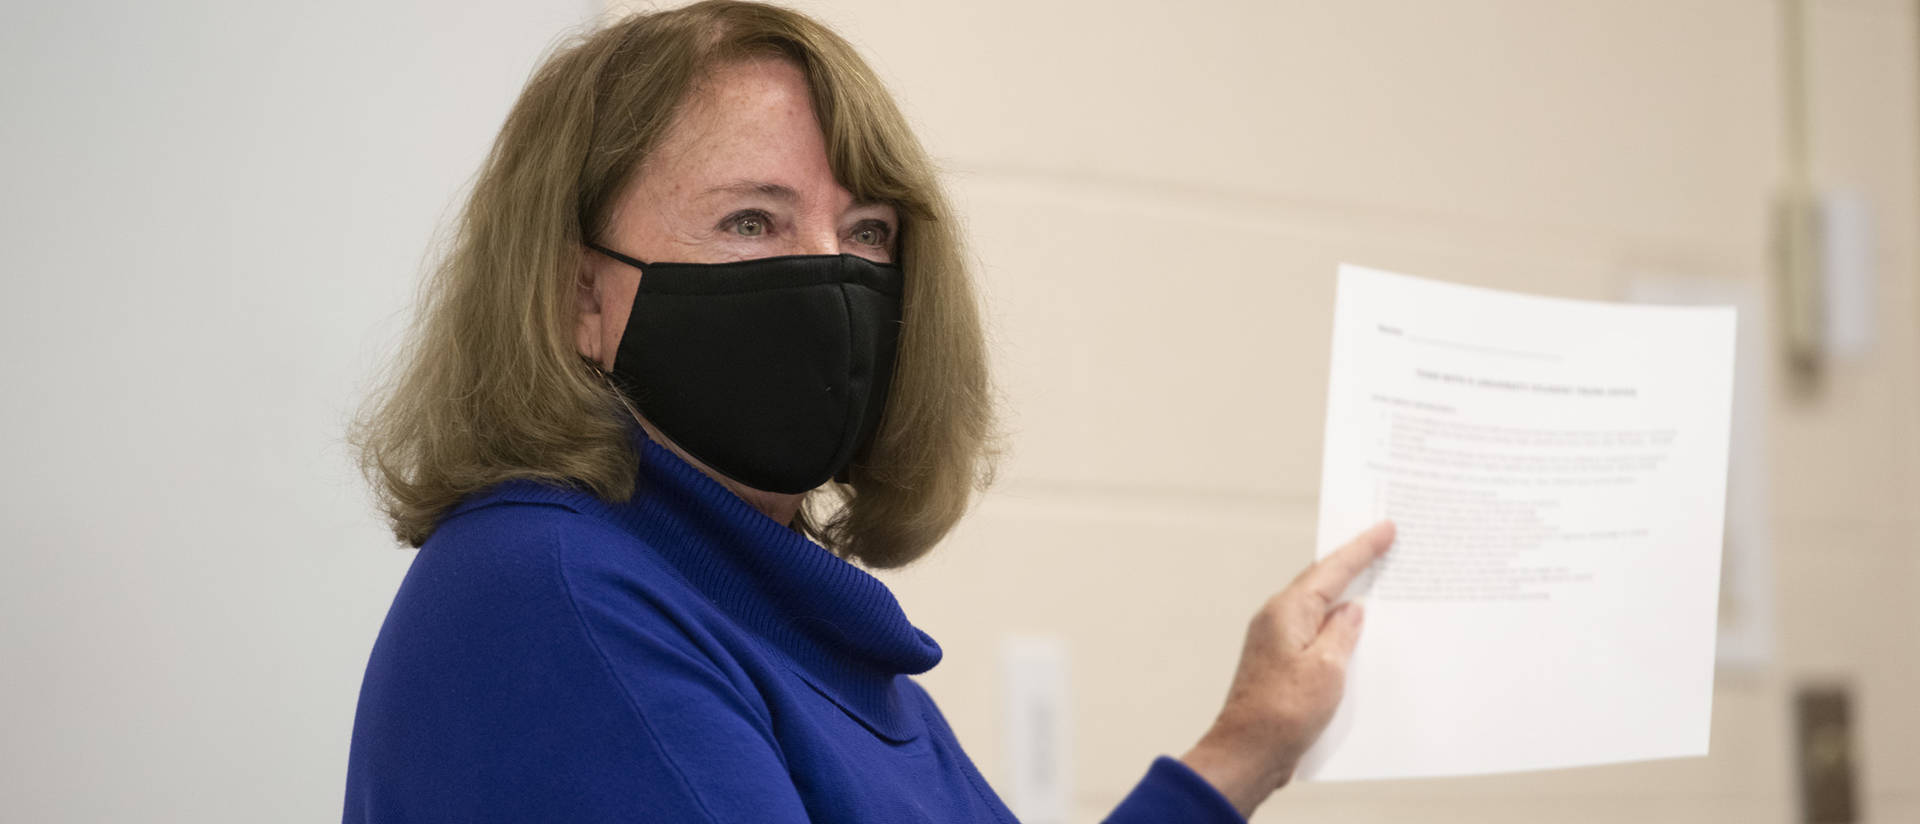 Instructor in mask holding up a paper while addressing class